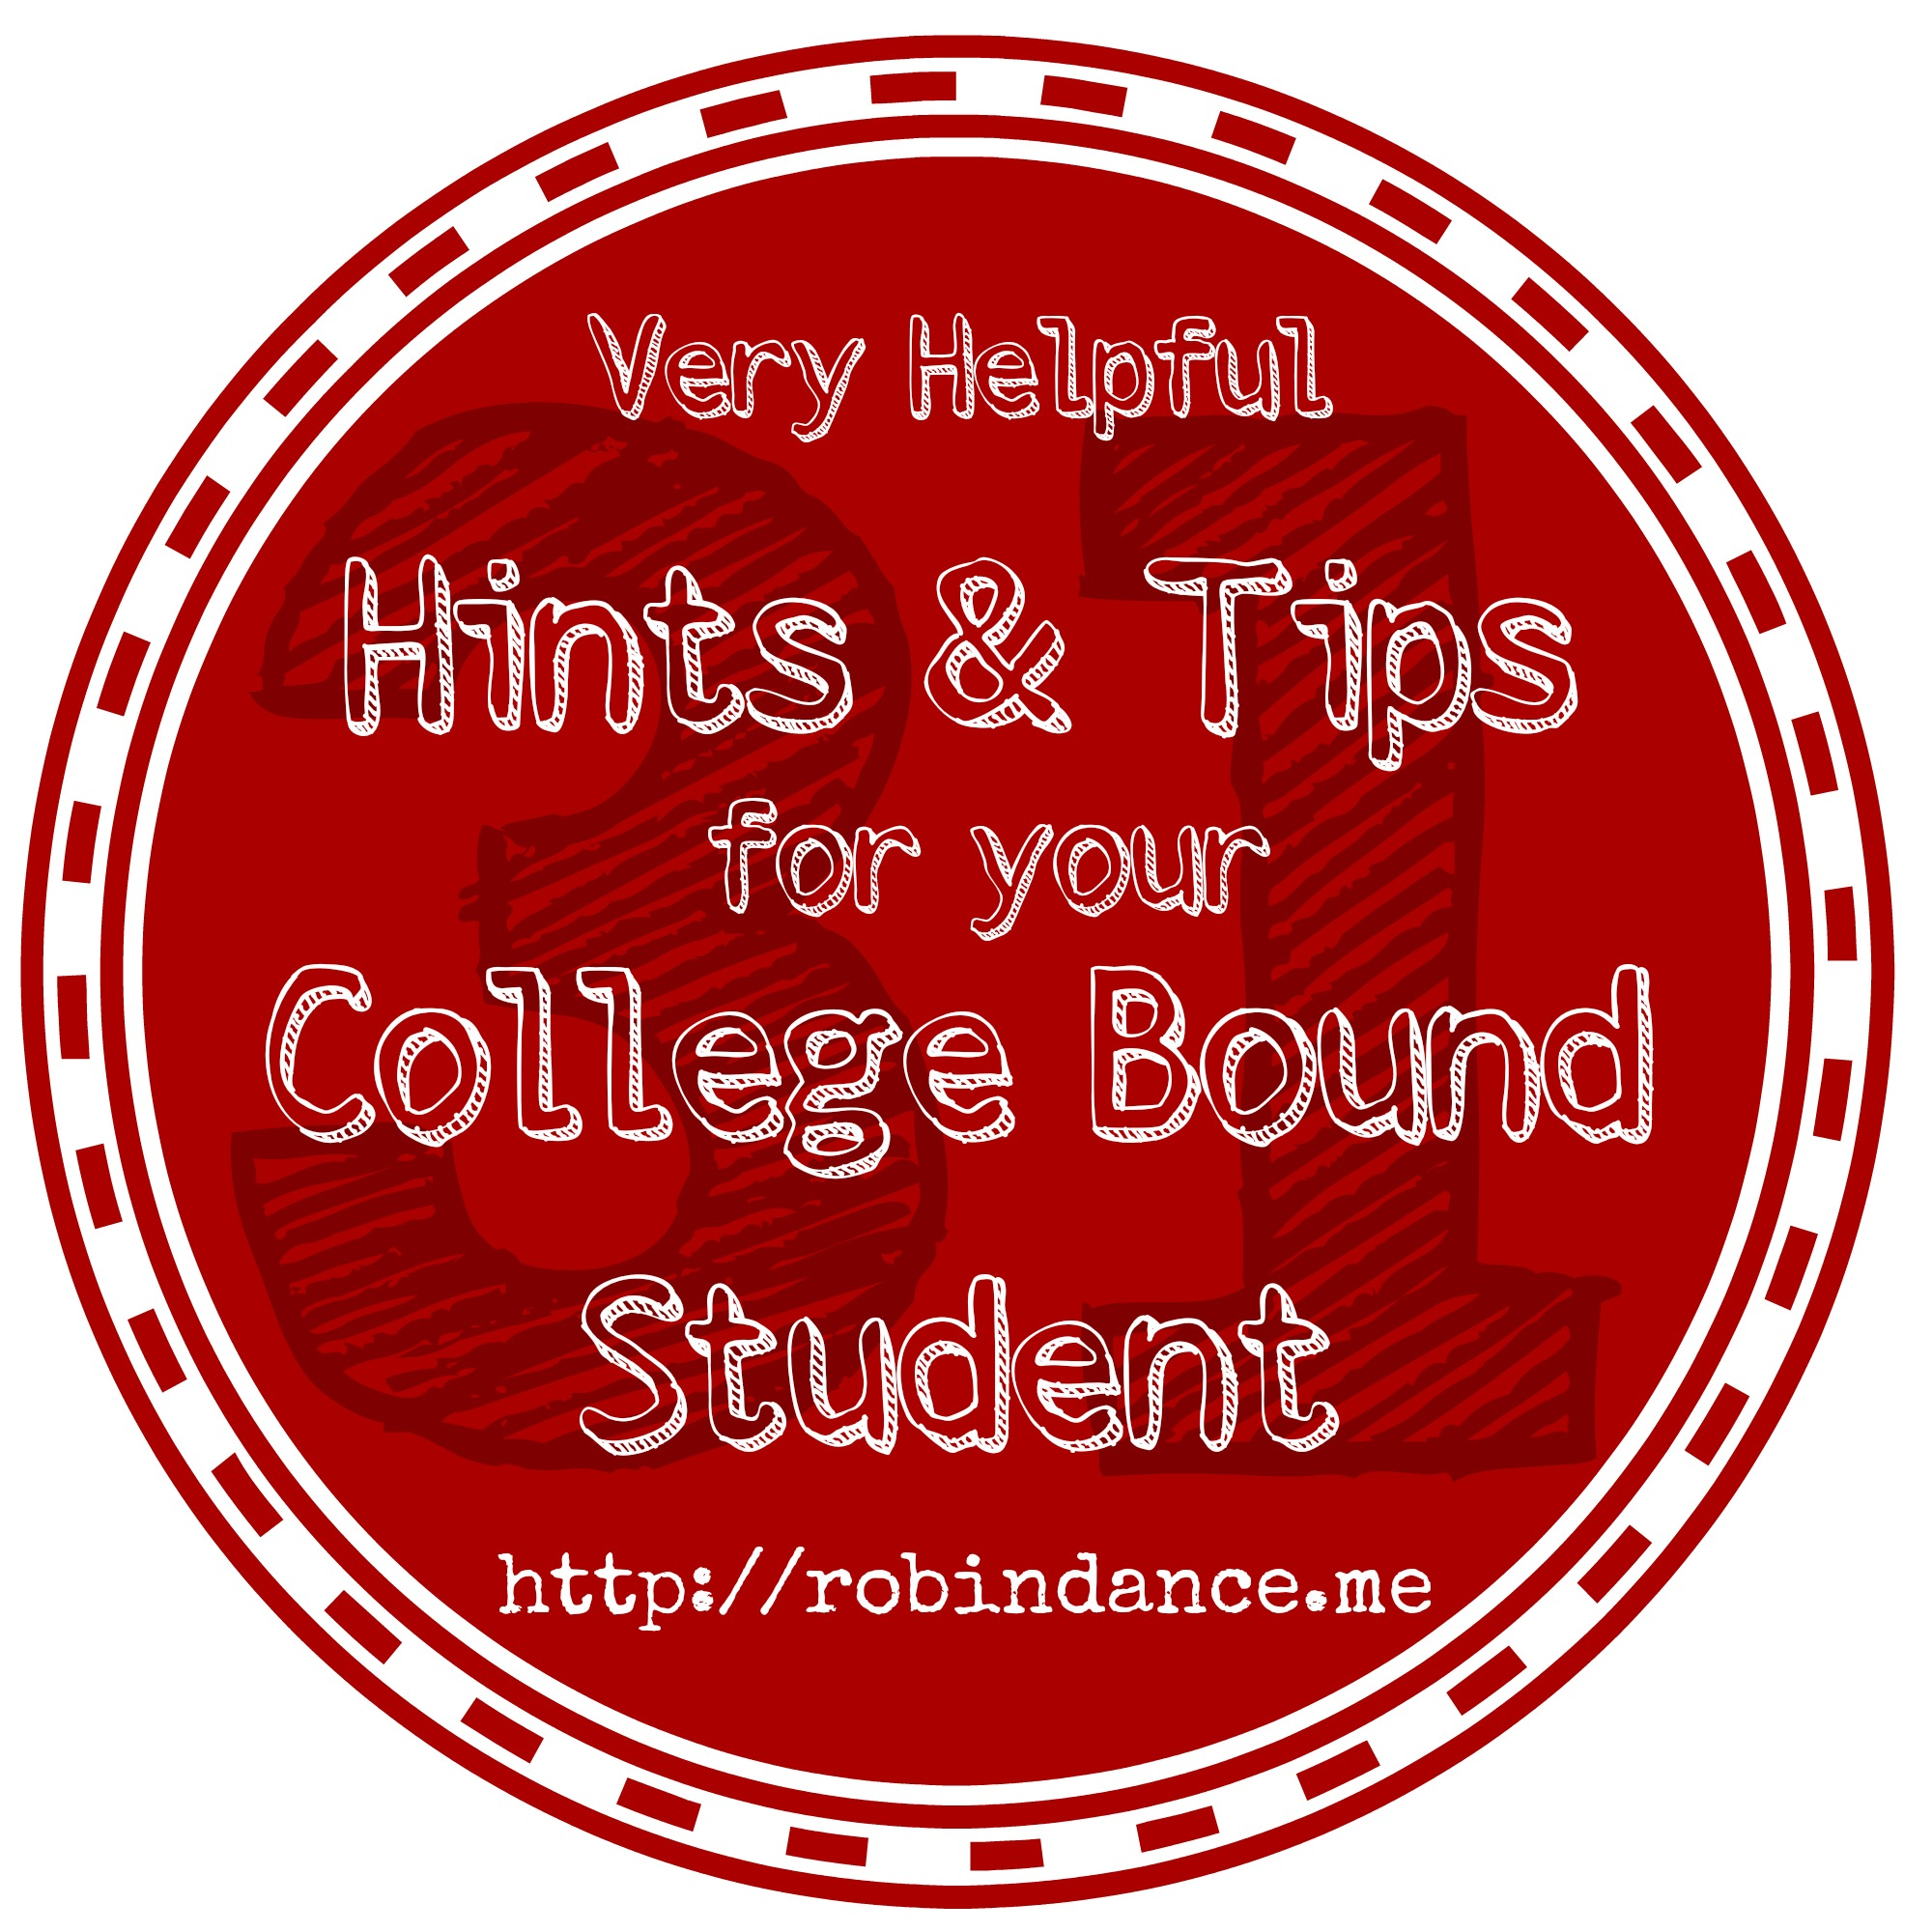 days hints tips for college bound students archives robin share this